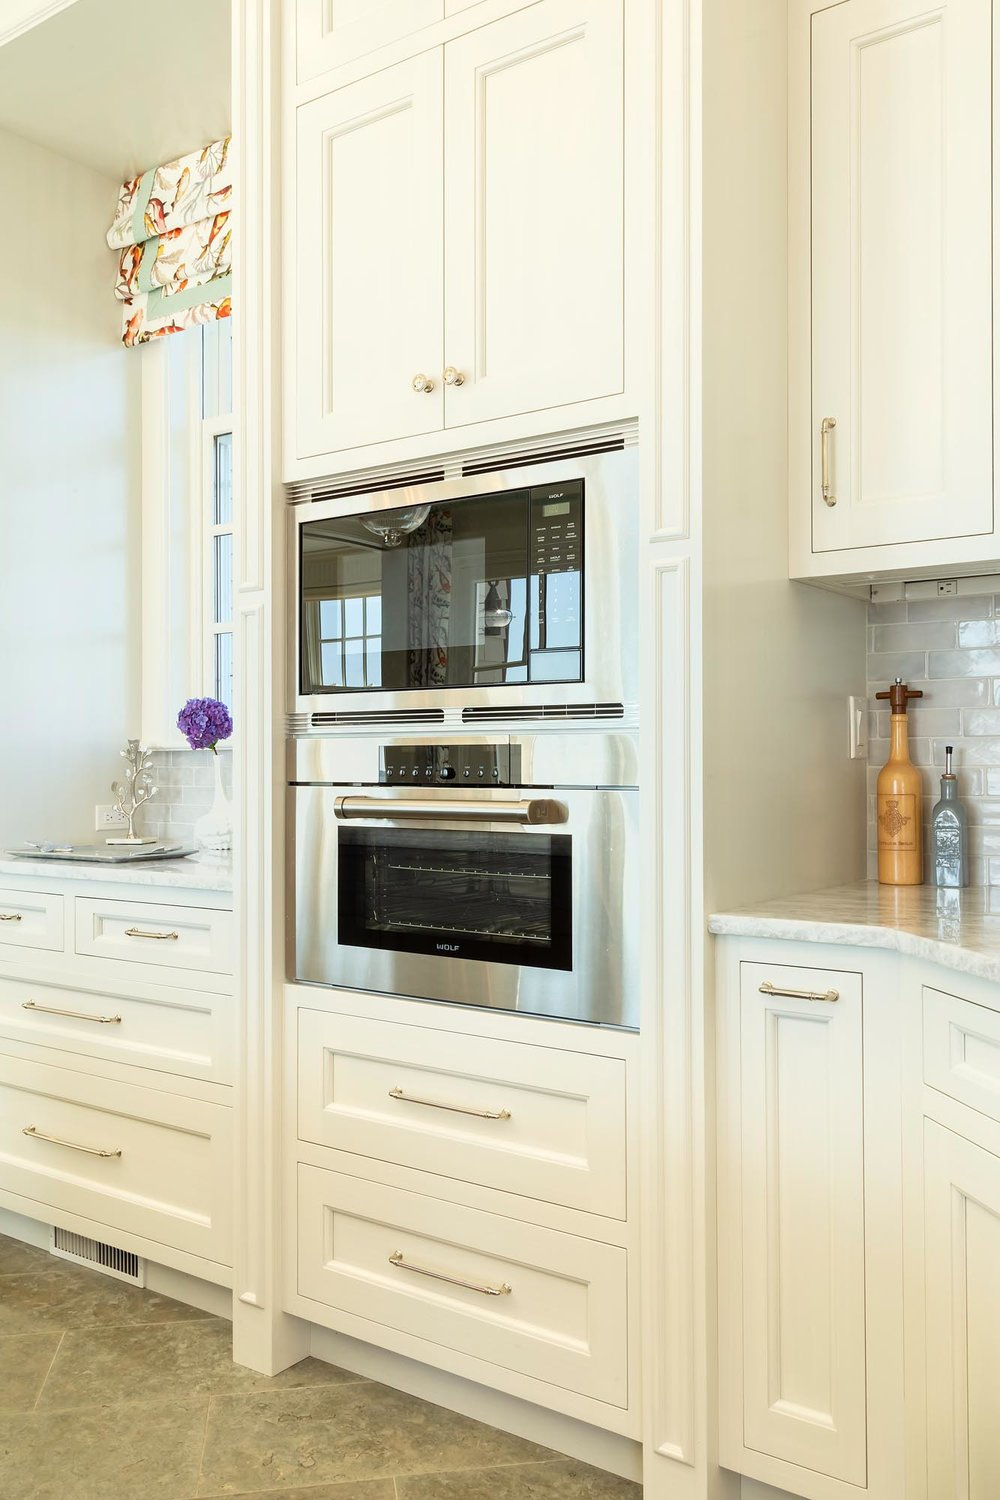 Transitional white kitchen with Wolf microwave and oven